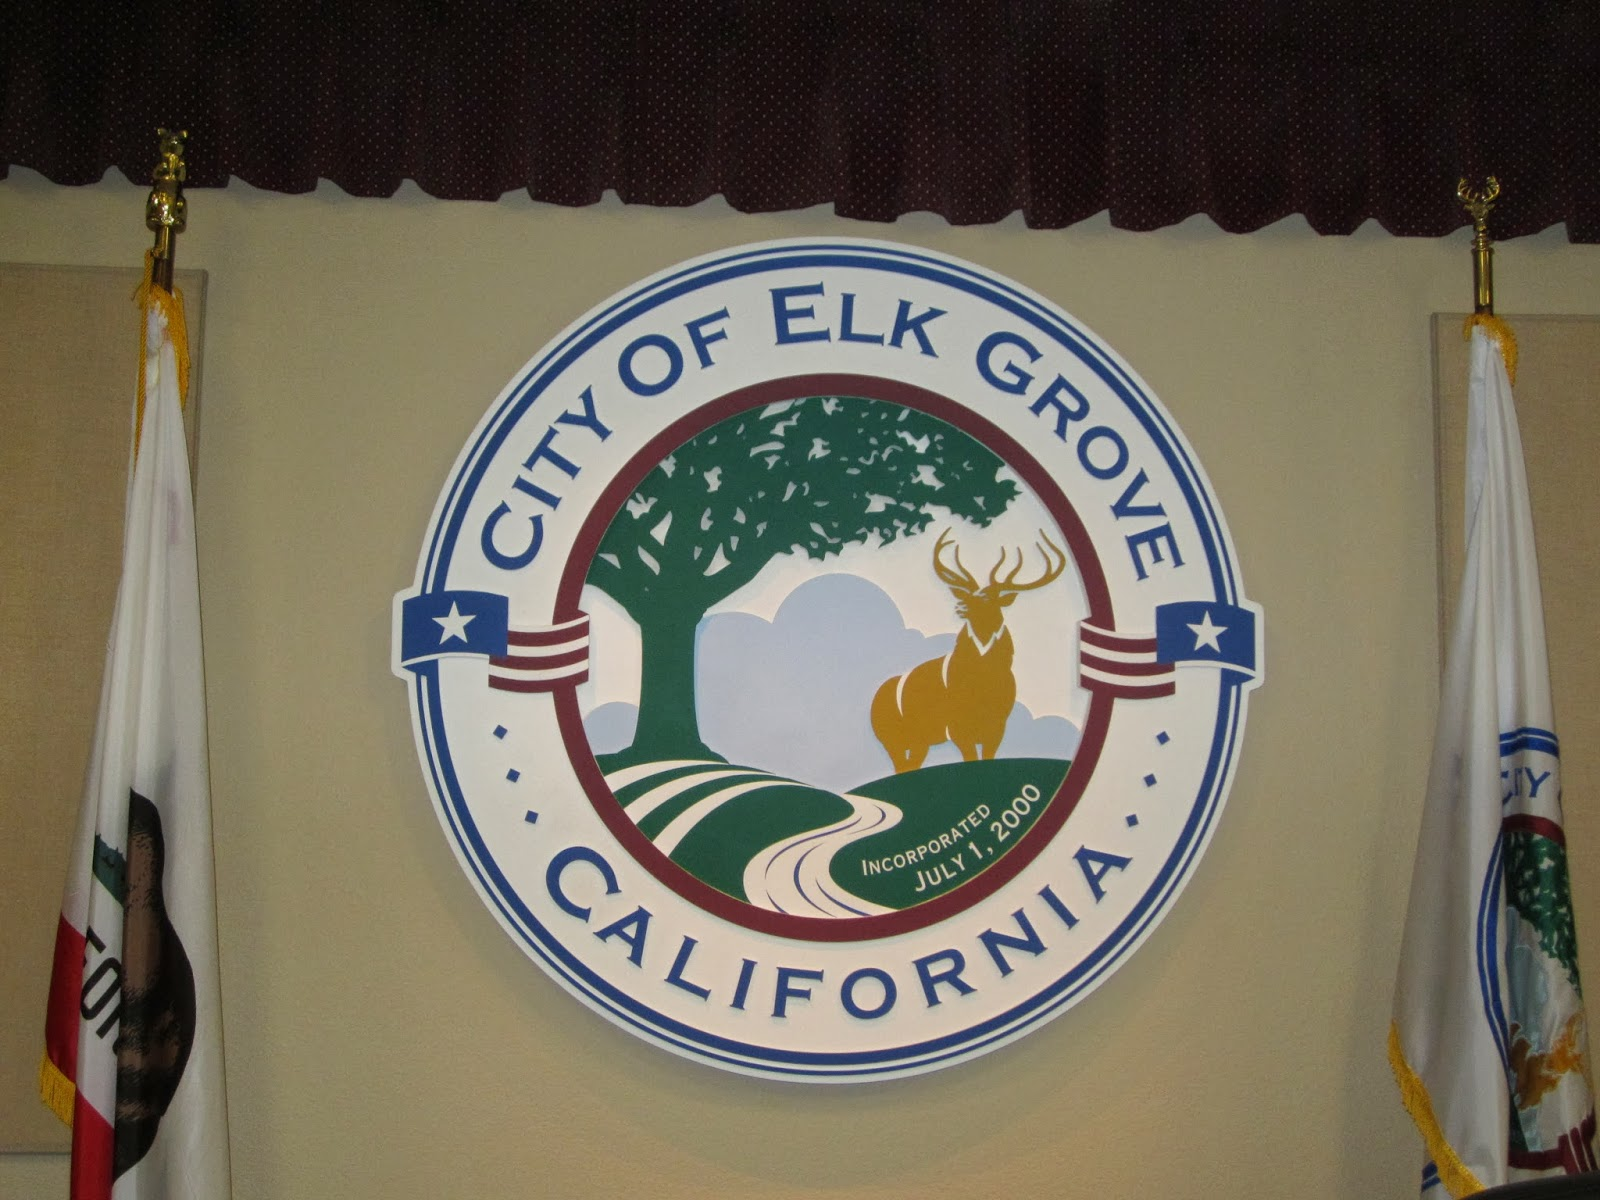 Special Meeting of Elk Grove City Council Scheduled for This Wednesday Afternoon